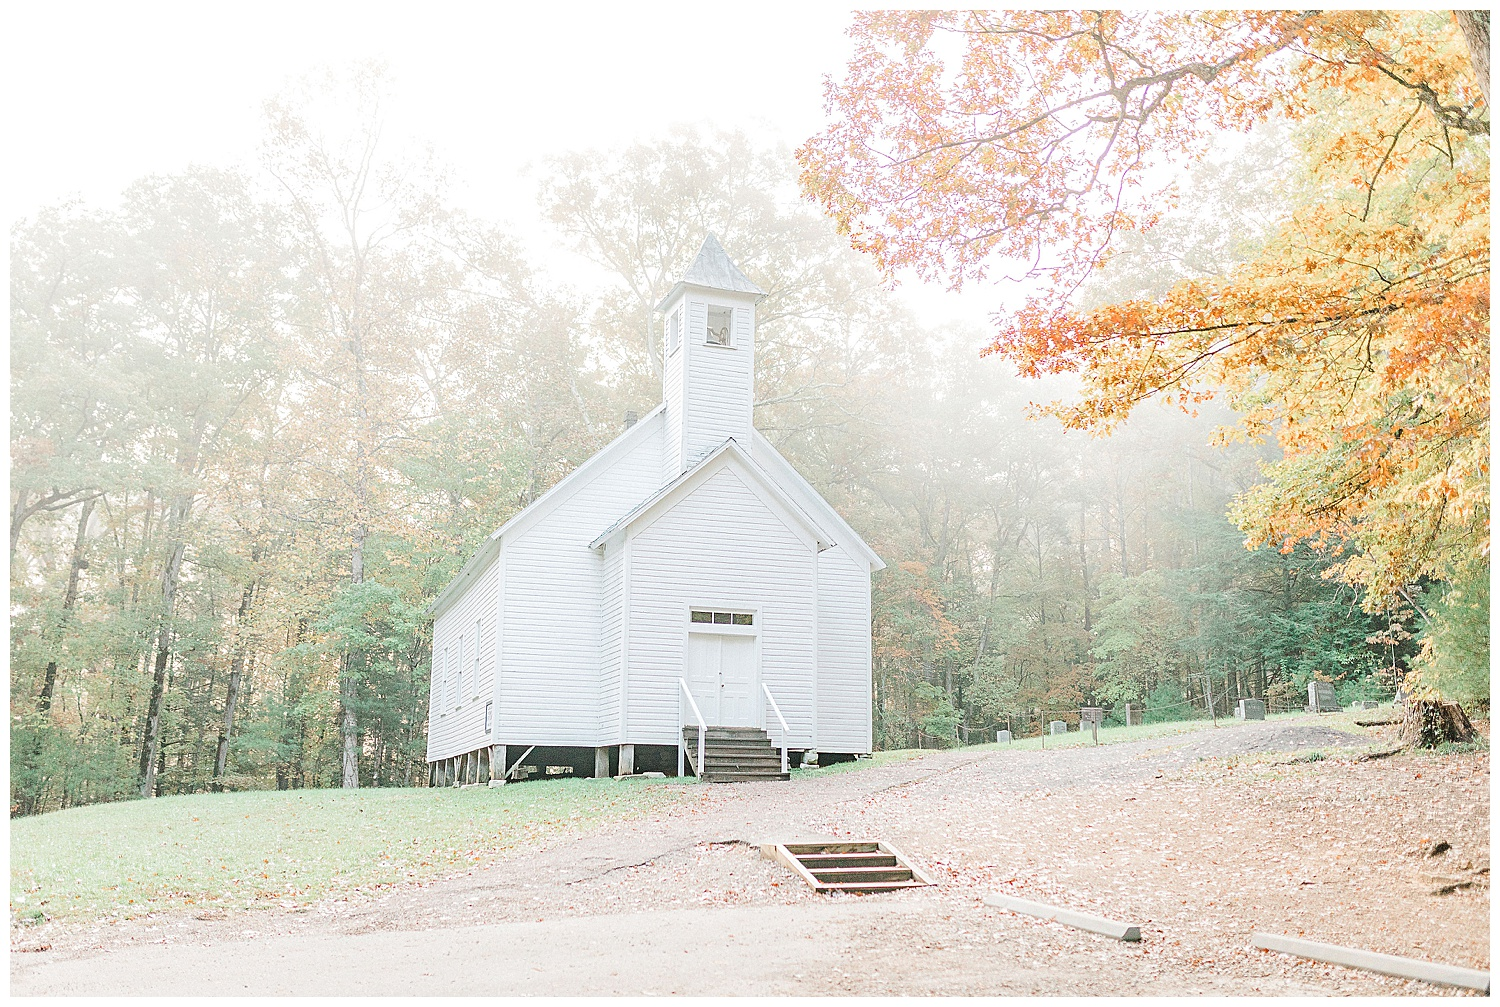 Emma Rose Company recently got to travel all the way to Nashville to photograph the most beautiful post-wedding bride and groom portraits in the Great Smoky Mountains with a gorgeous couple! Nashville wedding inspiration at it's finest._0023.jpg